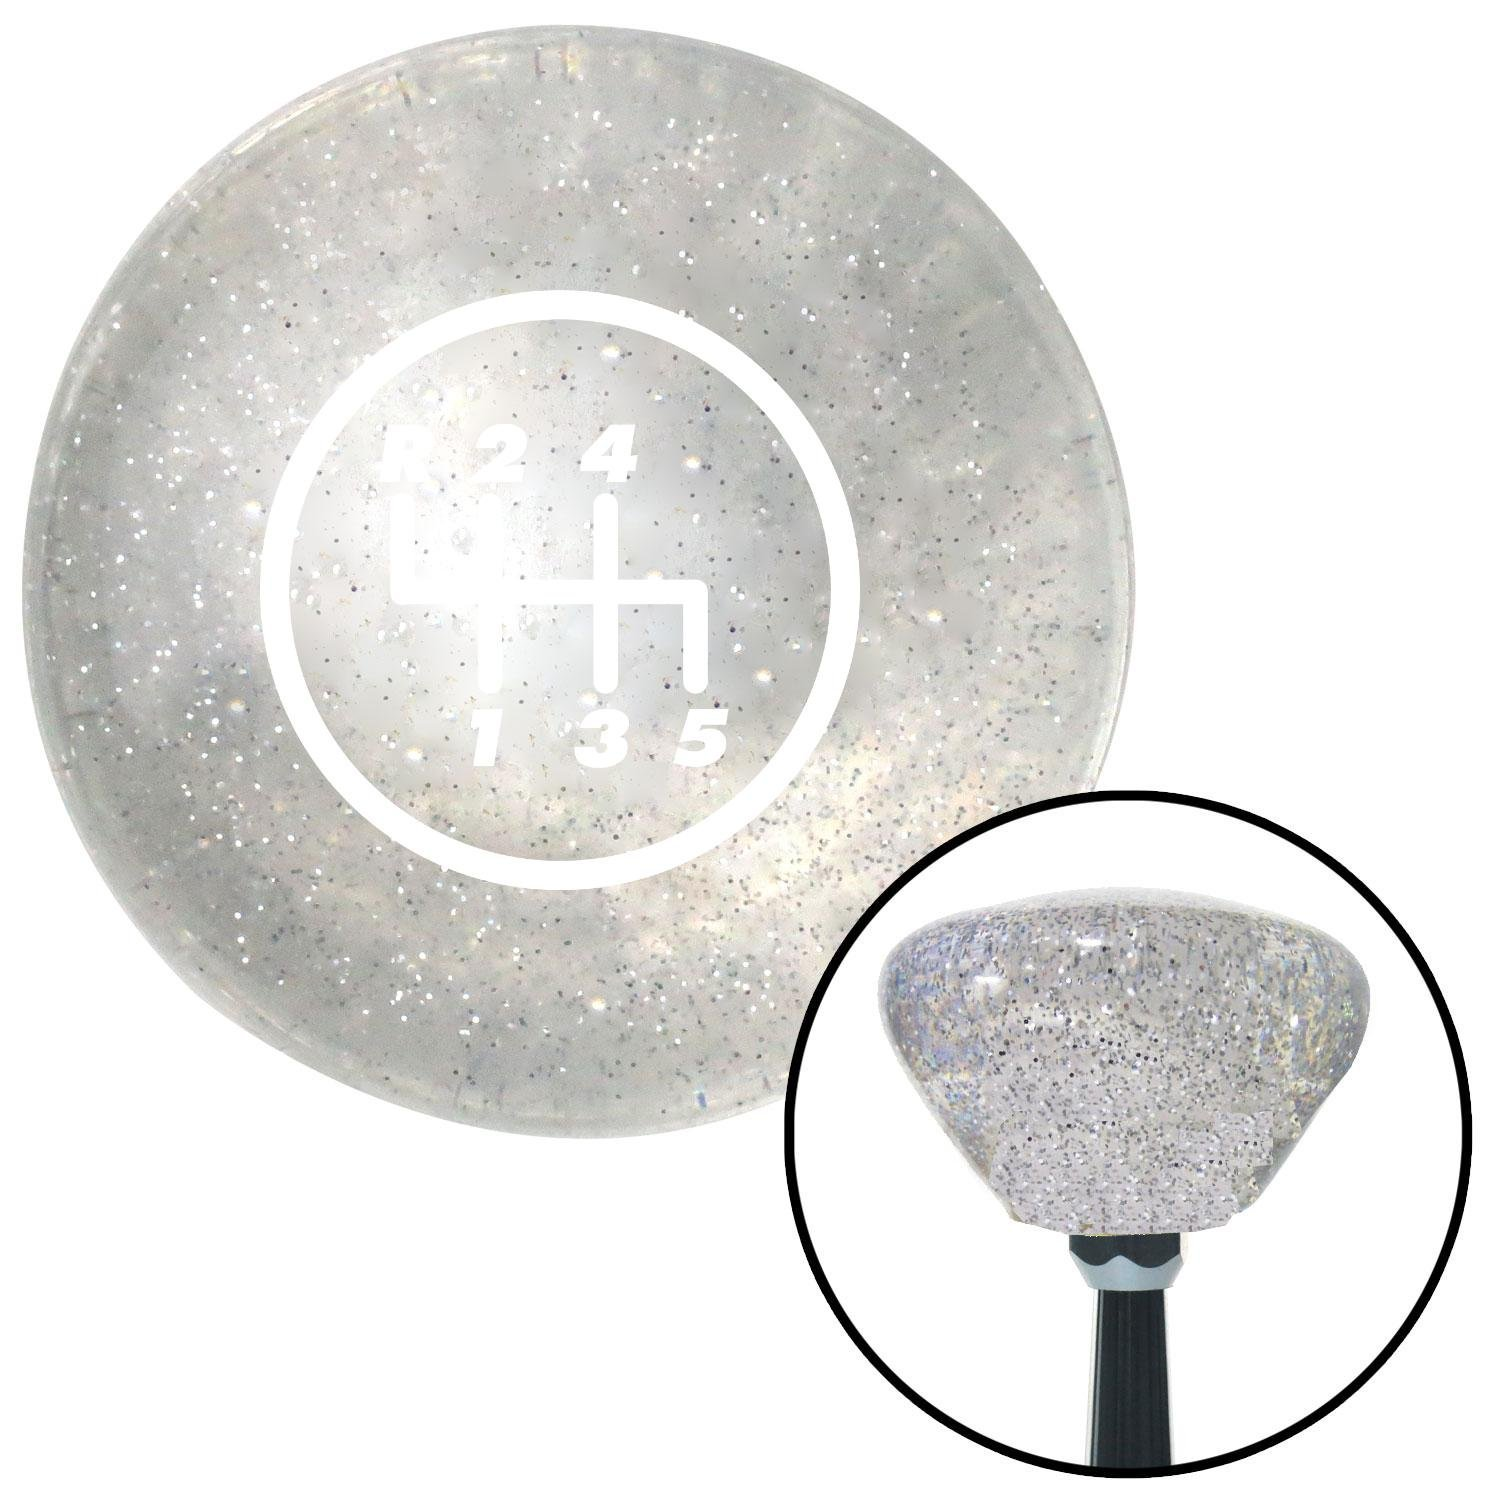 White 5 Speed Shift Pattern - 5RUL American Shifter 159084 Clear Retro Metal Flake Shift Knob with M16 x 1.5 Insert